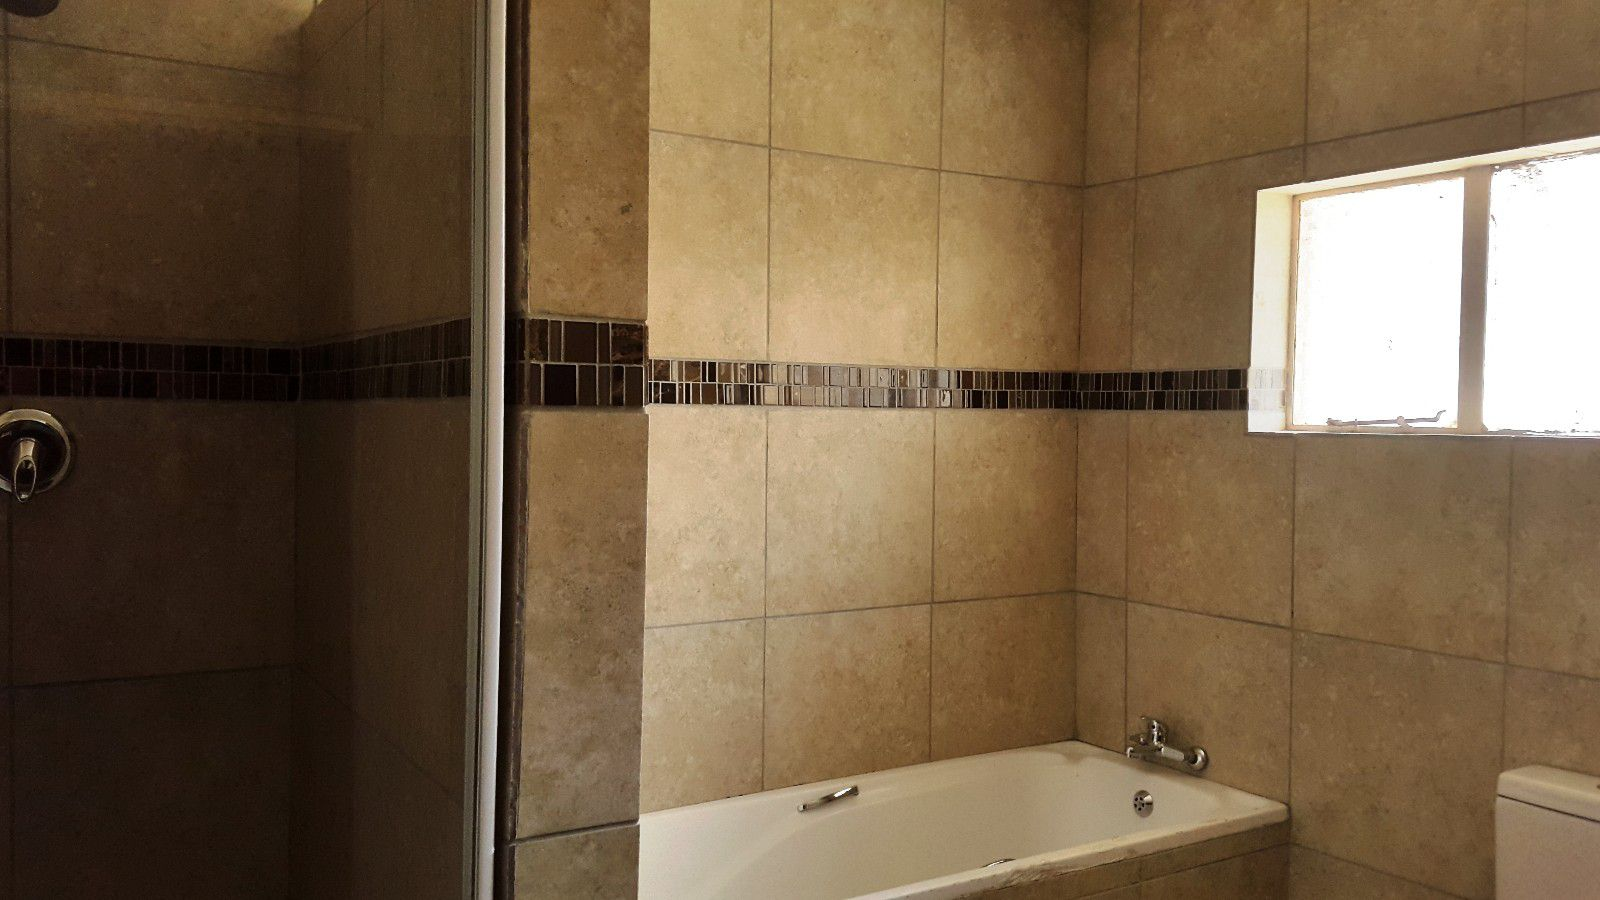 Potchefstroom Central property for sale. Ref No: 13410360. Picture no 17